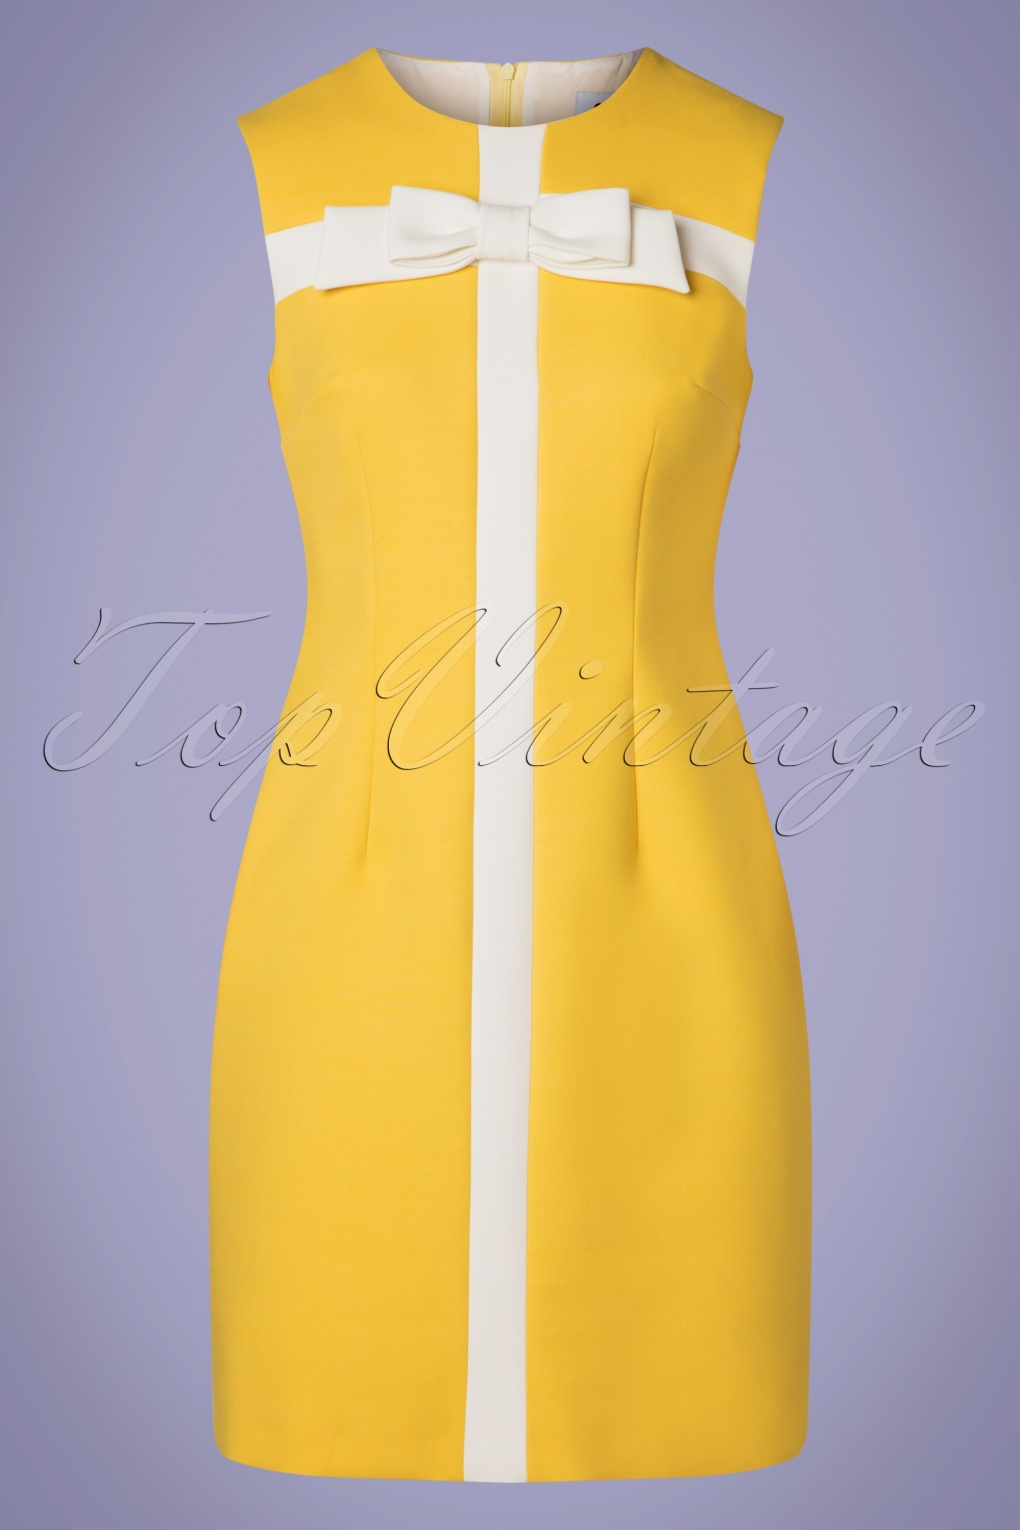 60s Dresses   1960s Dresses Mod, Mini, Hippie 60s Suze Bow Dress in Pale Yellow and Ivory £131.08 AT vintagedancer.com